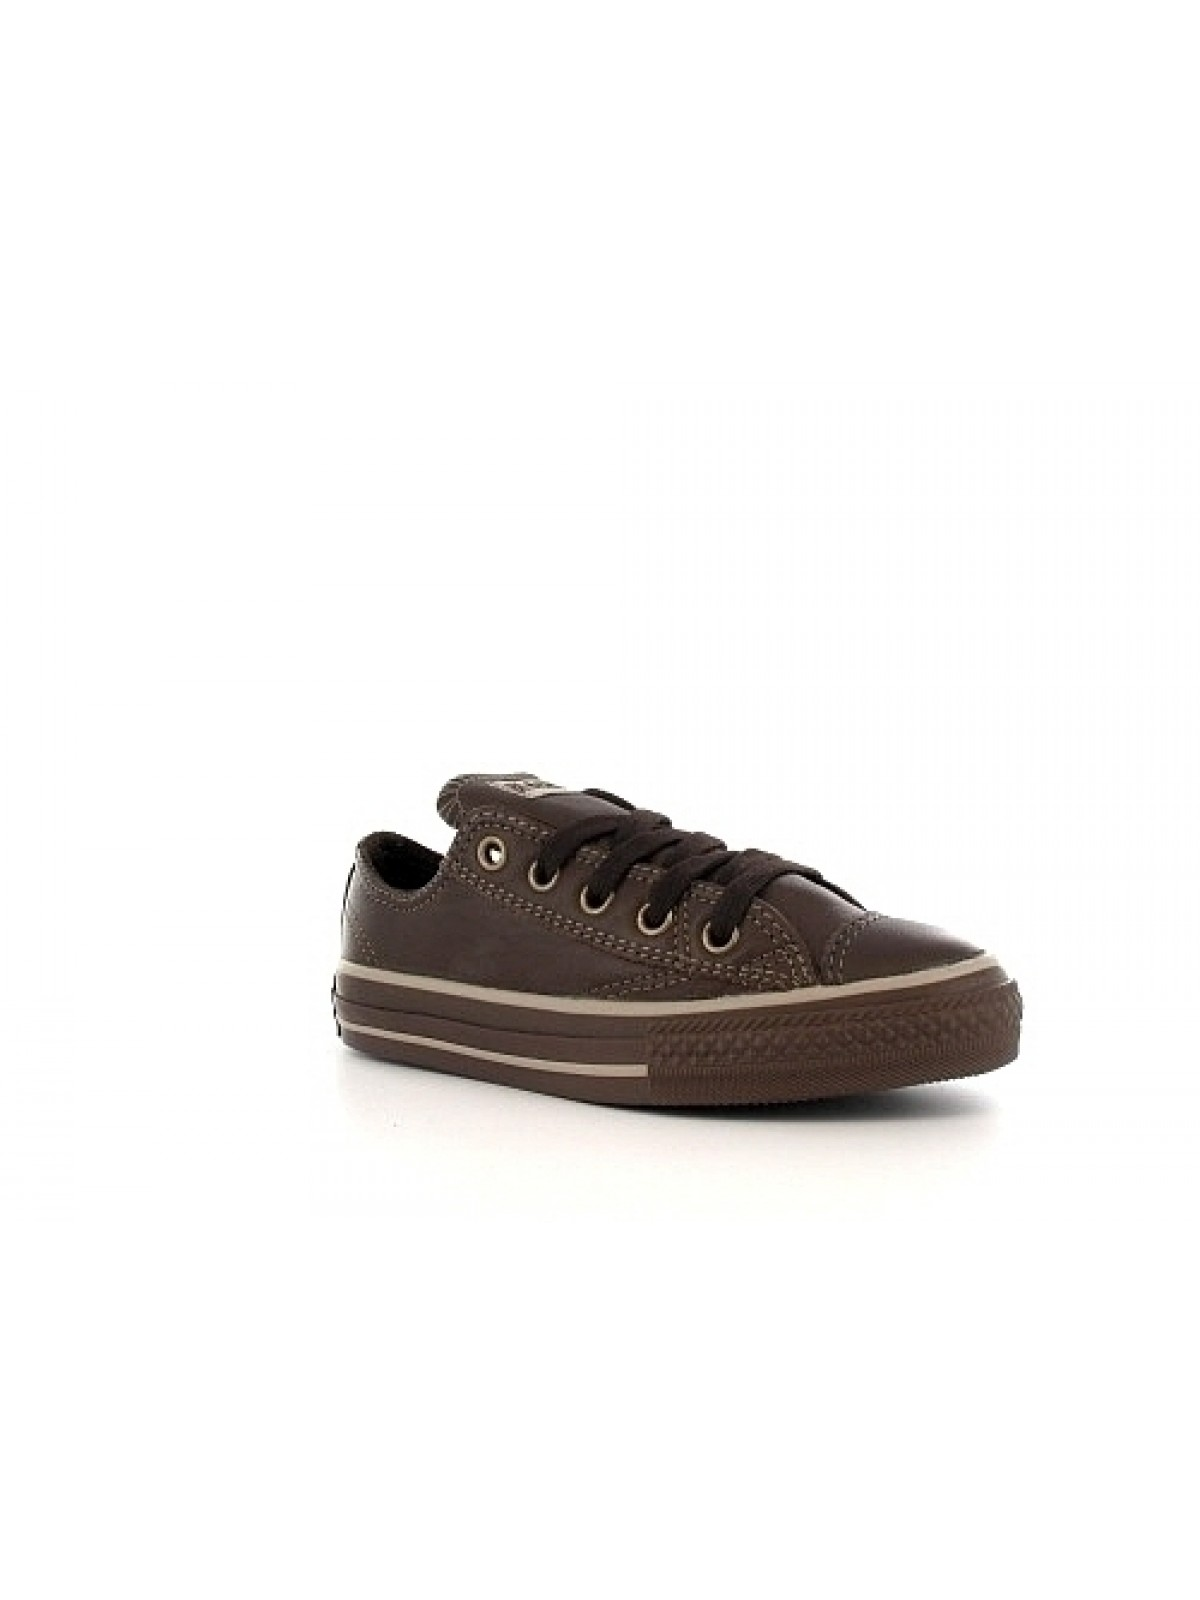 Converse Chuck Taylor all star junior cuir basse Soft chocolat